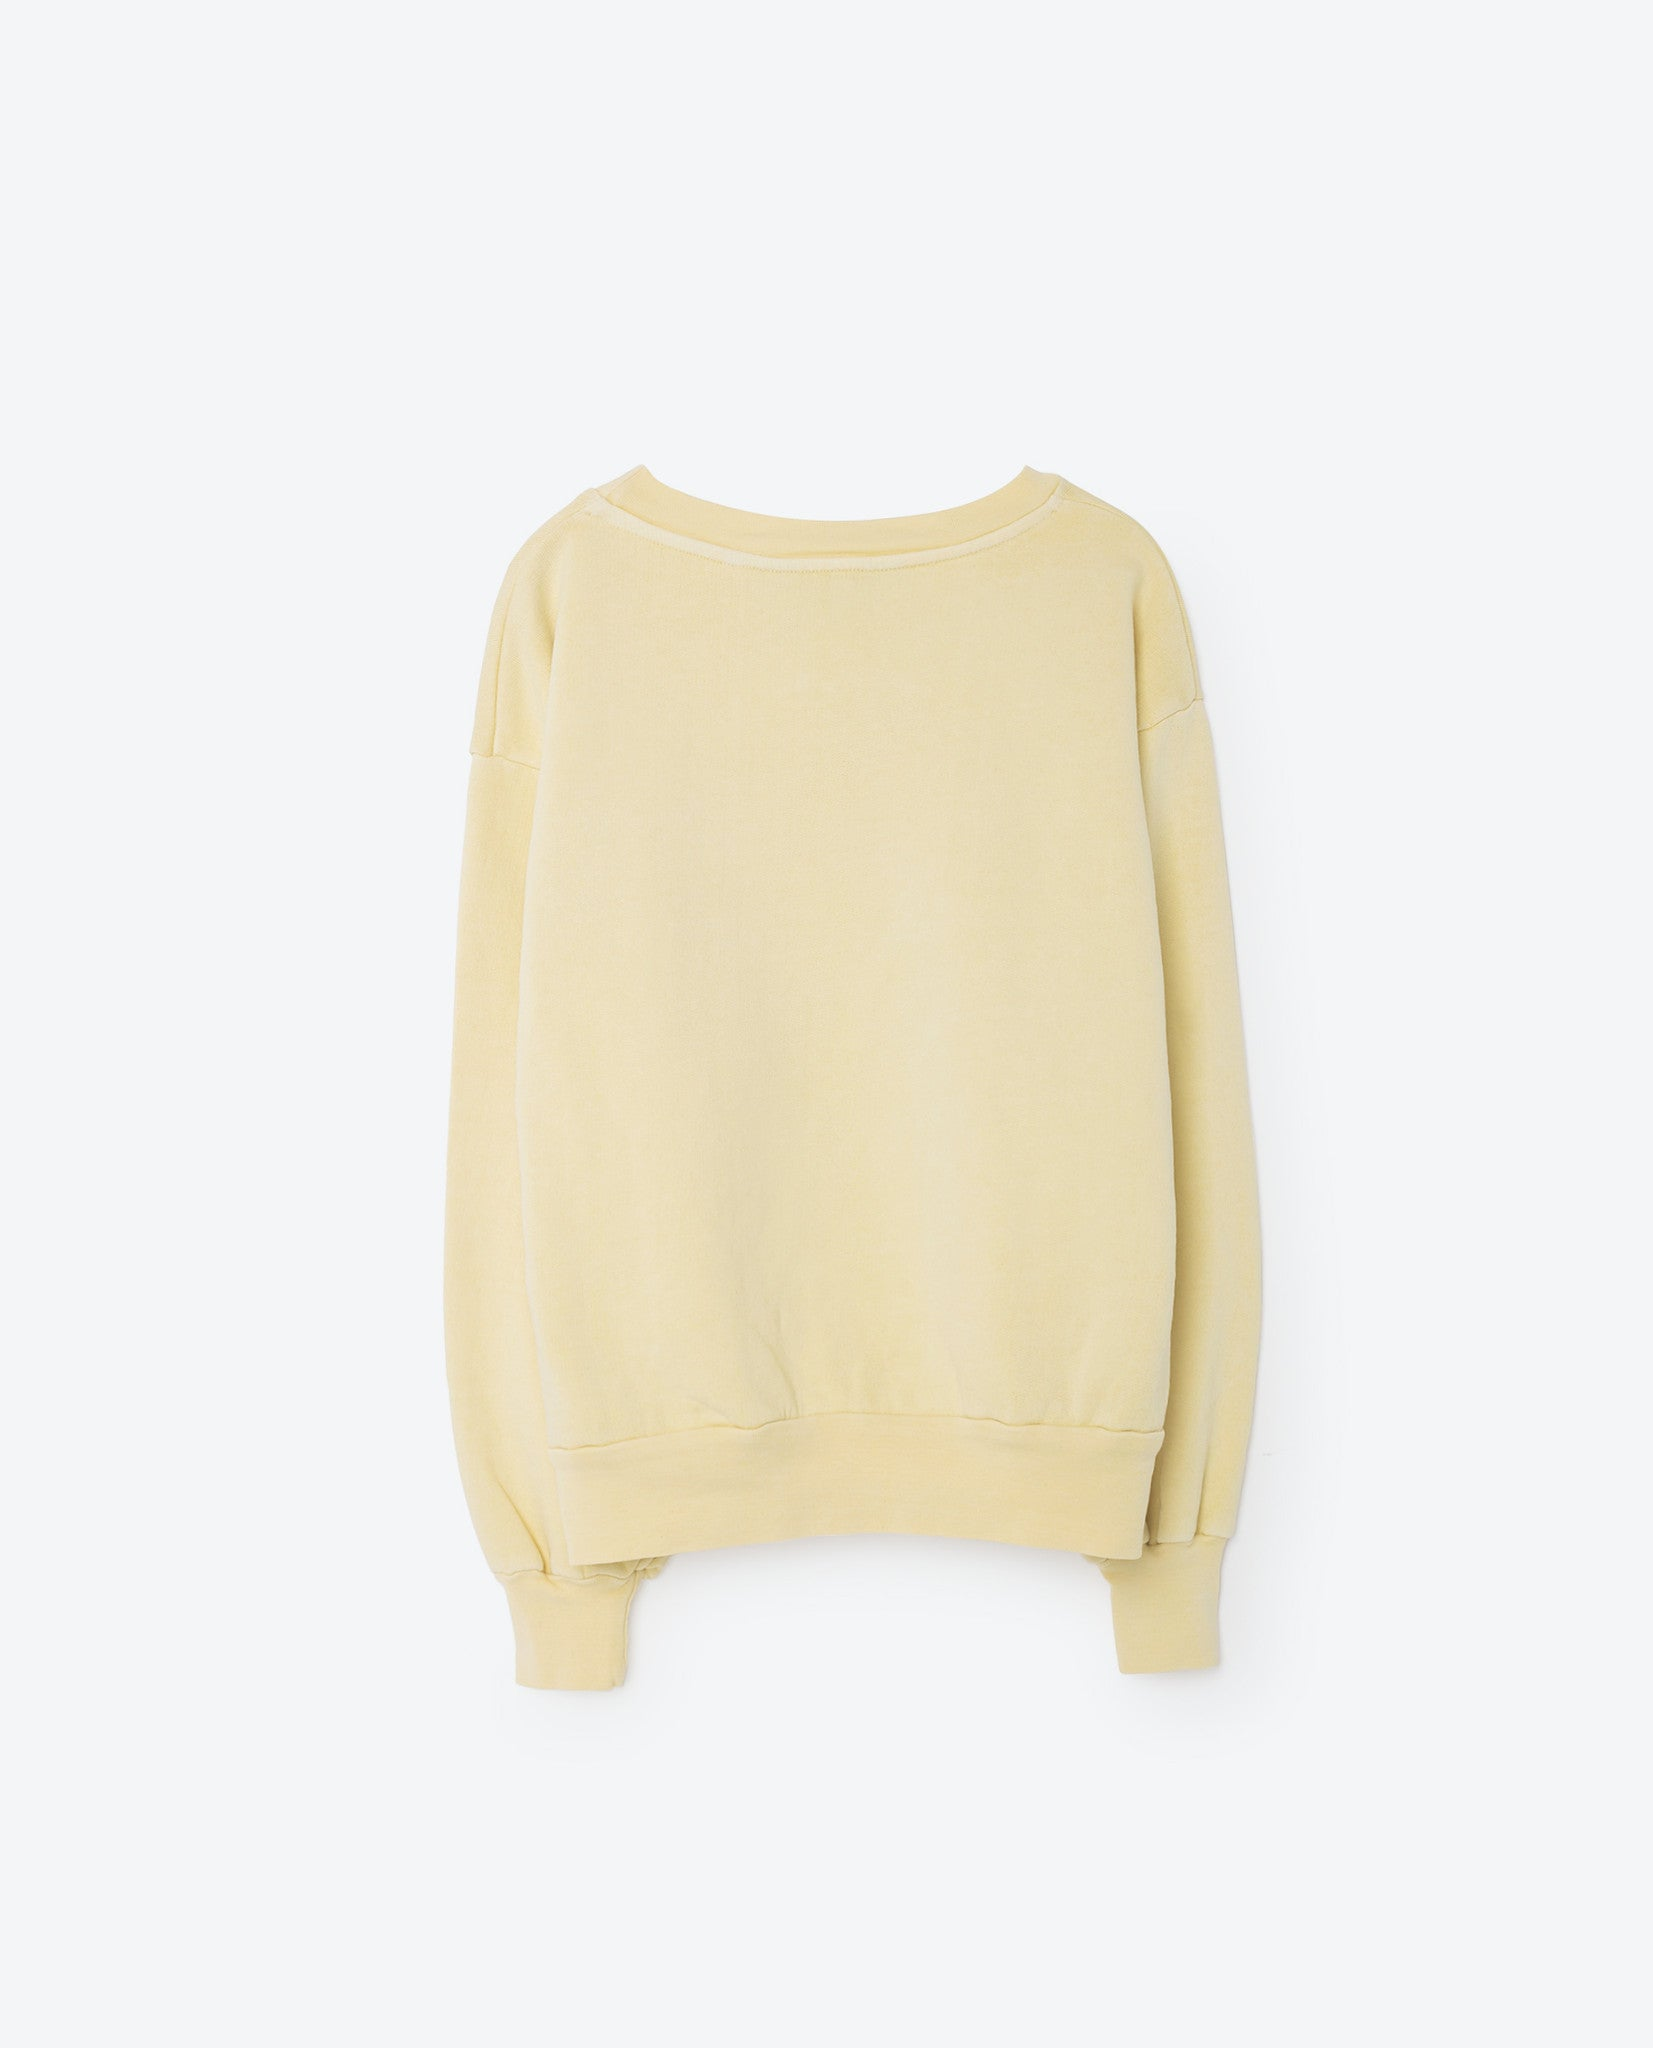 The Animals Observatory Soft Yellow L'amour Sweatshirt